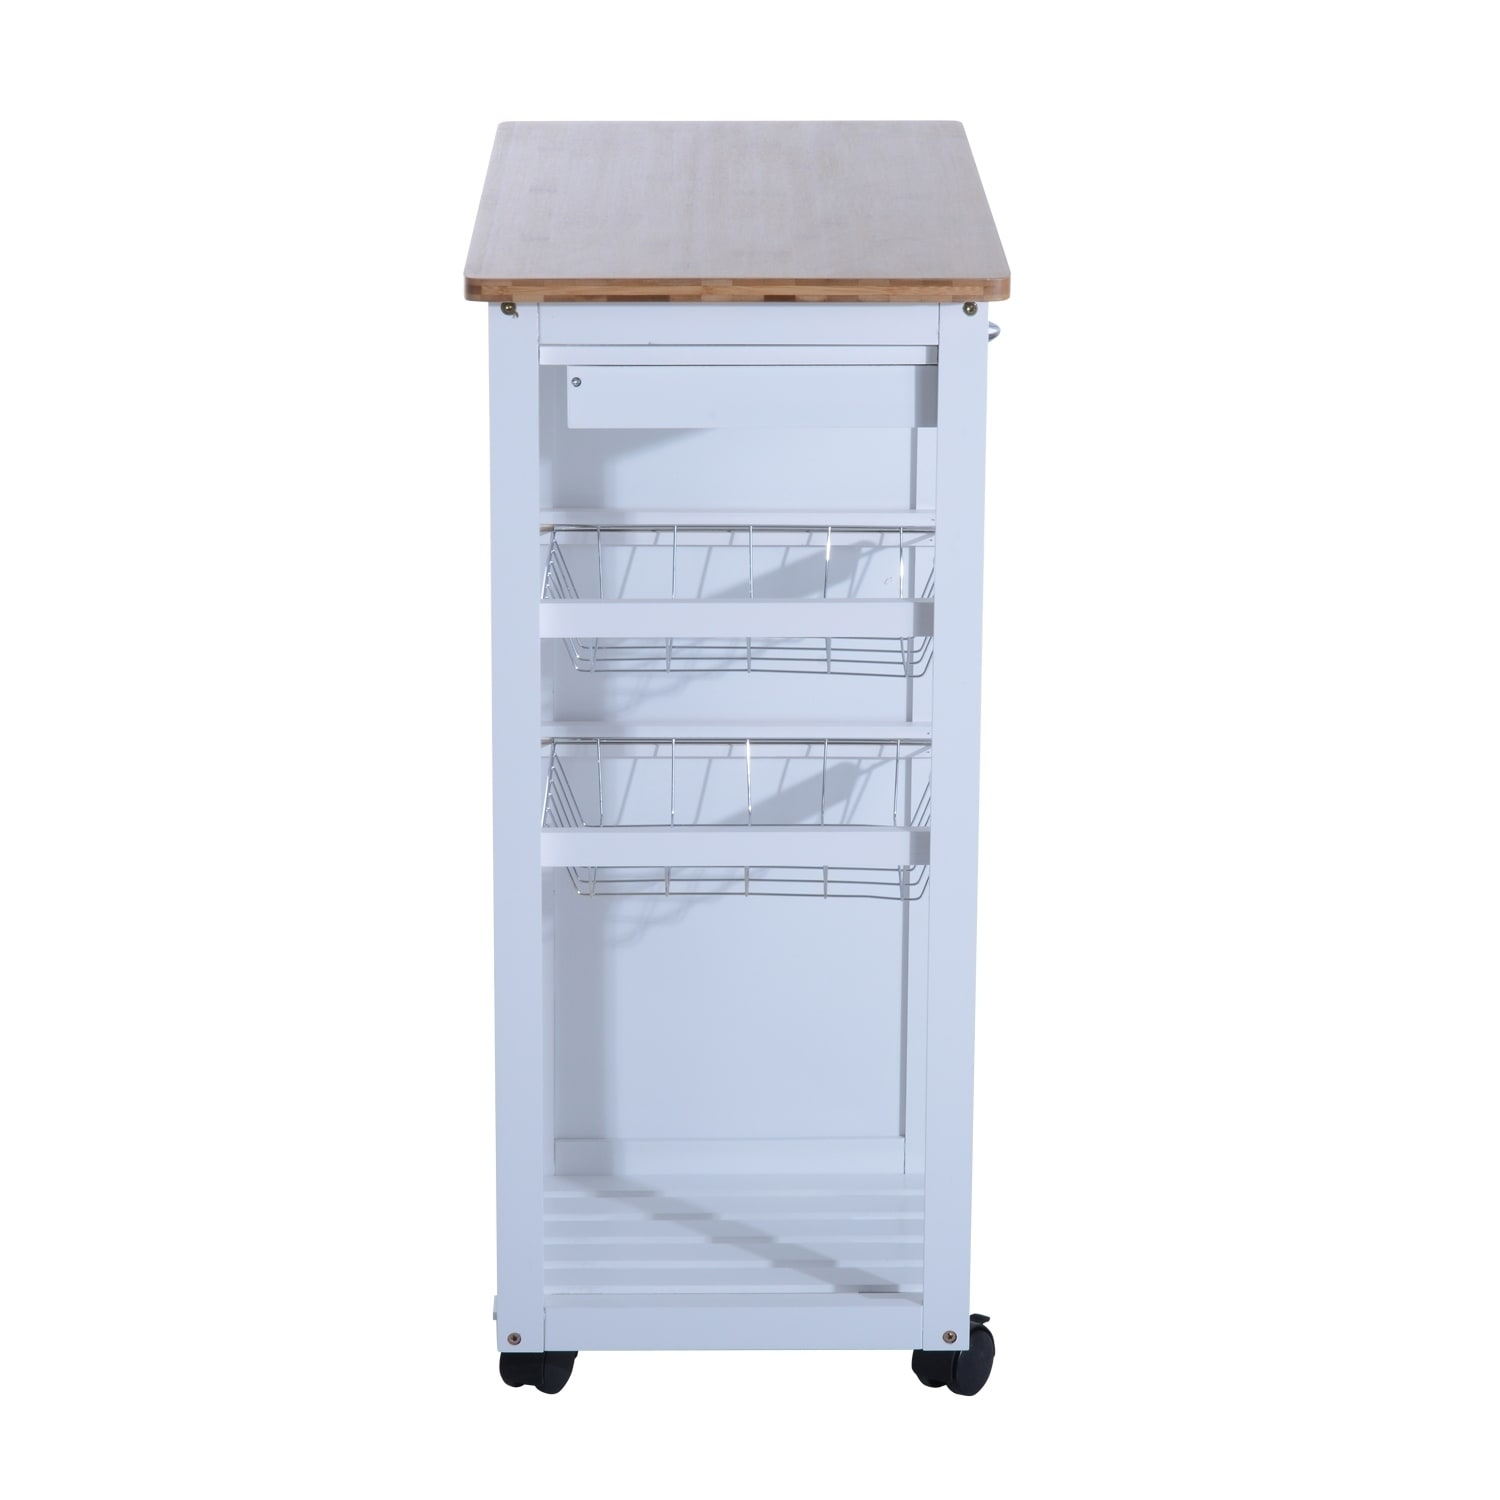 Danver Commercial Mobile Kitchen Carts: Kitchen Rolling Cart With Drawers